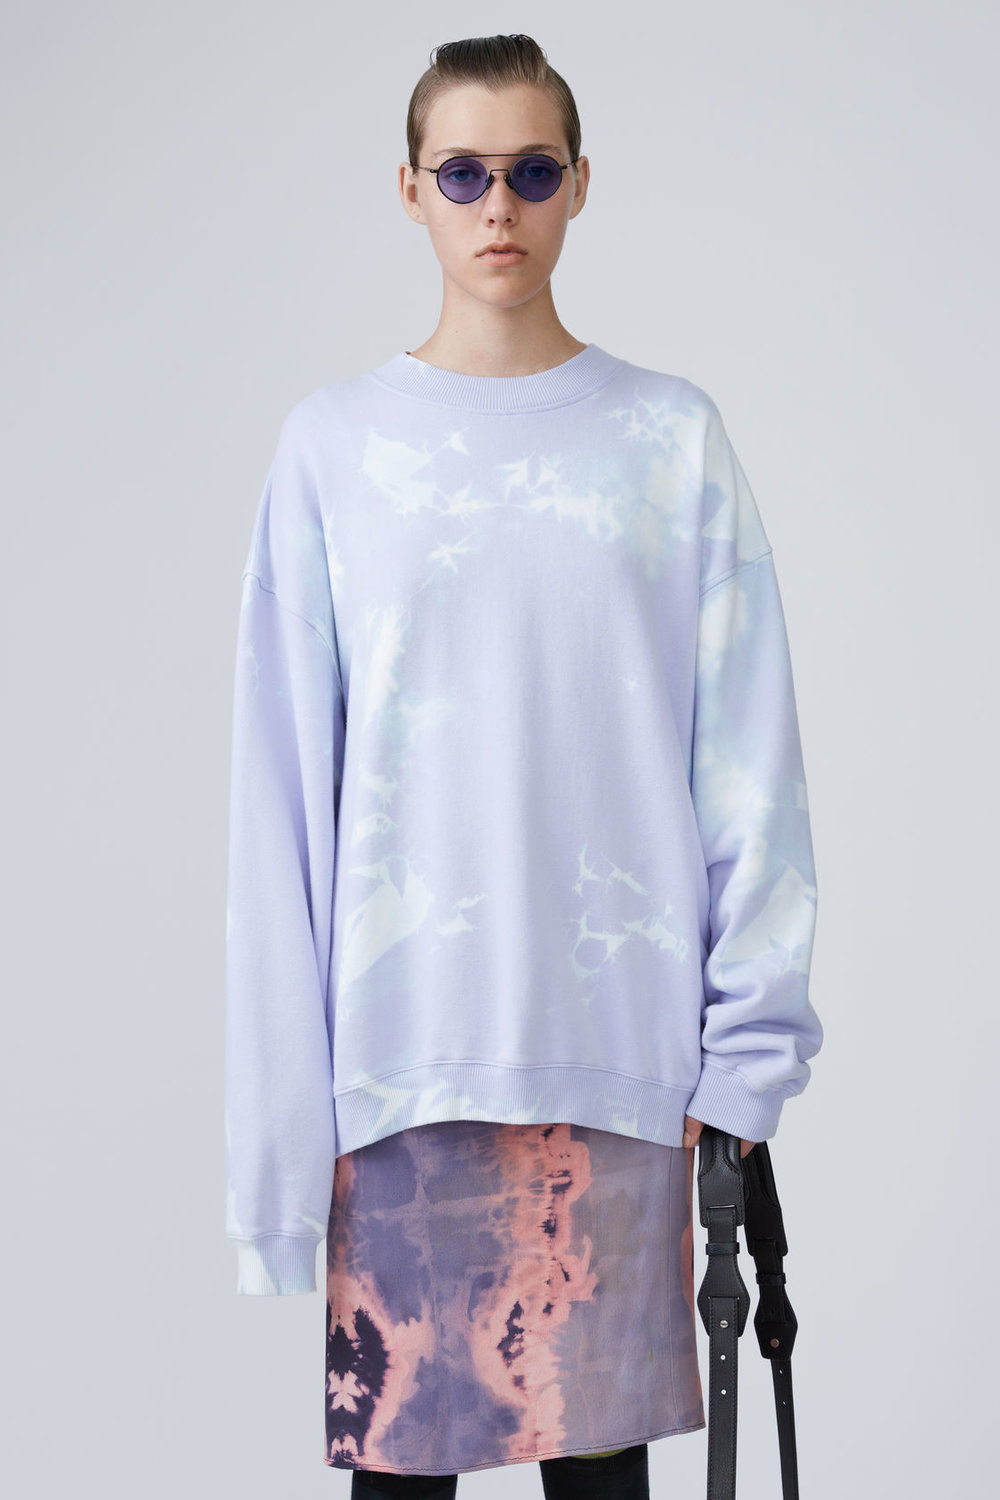 Acne Purple Bleach Sweater